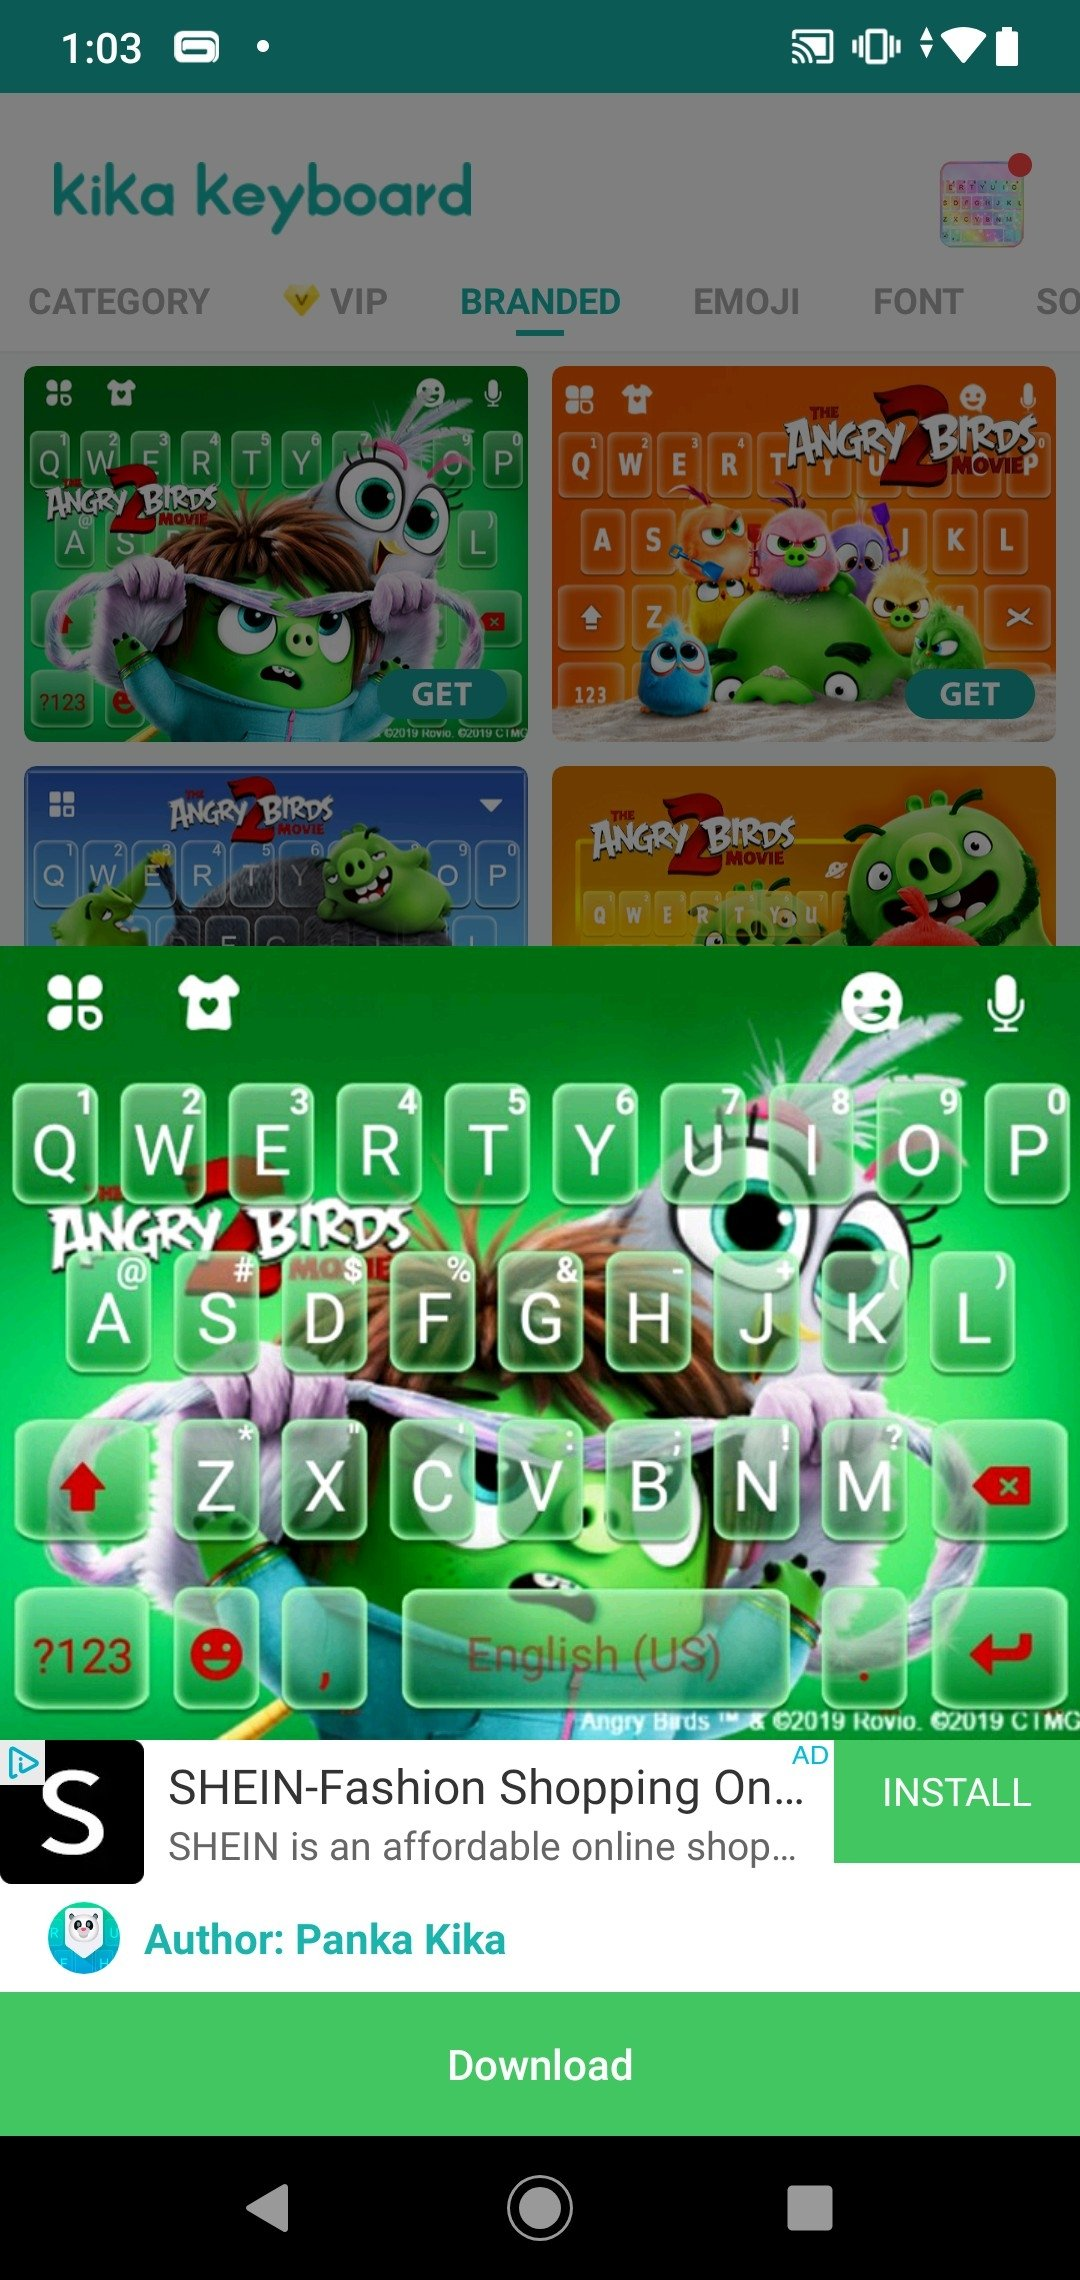 Top Twelve Download Kika Keyboard Emoji Gif Apk {Kwalai}